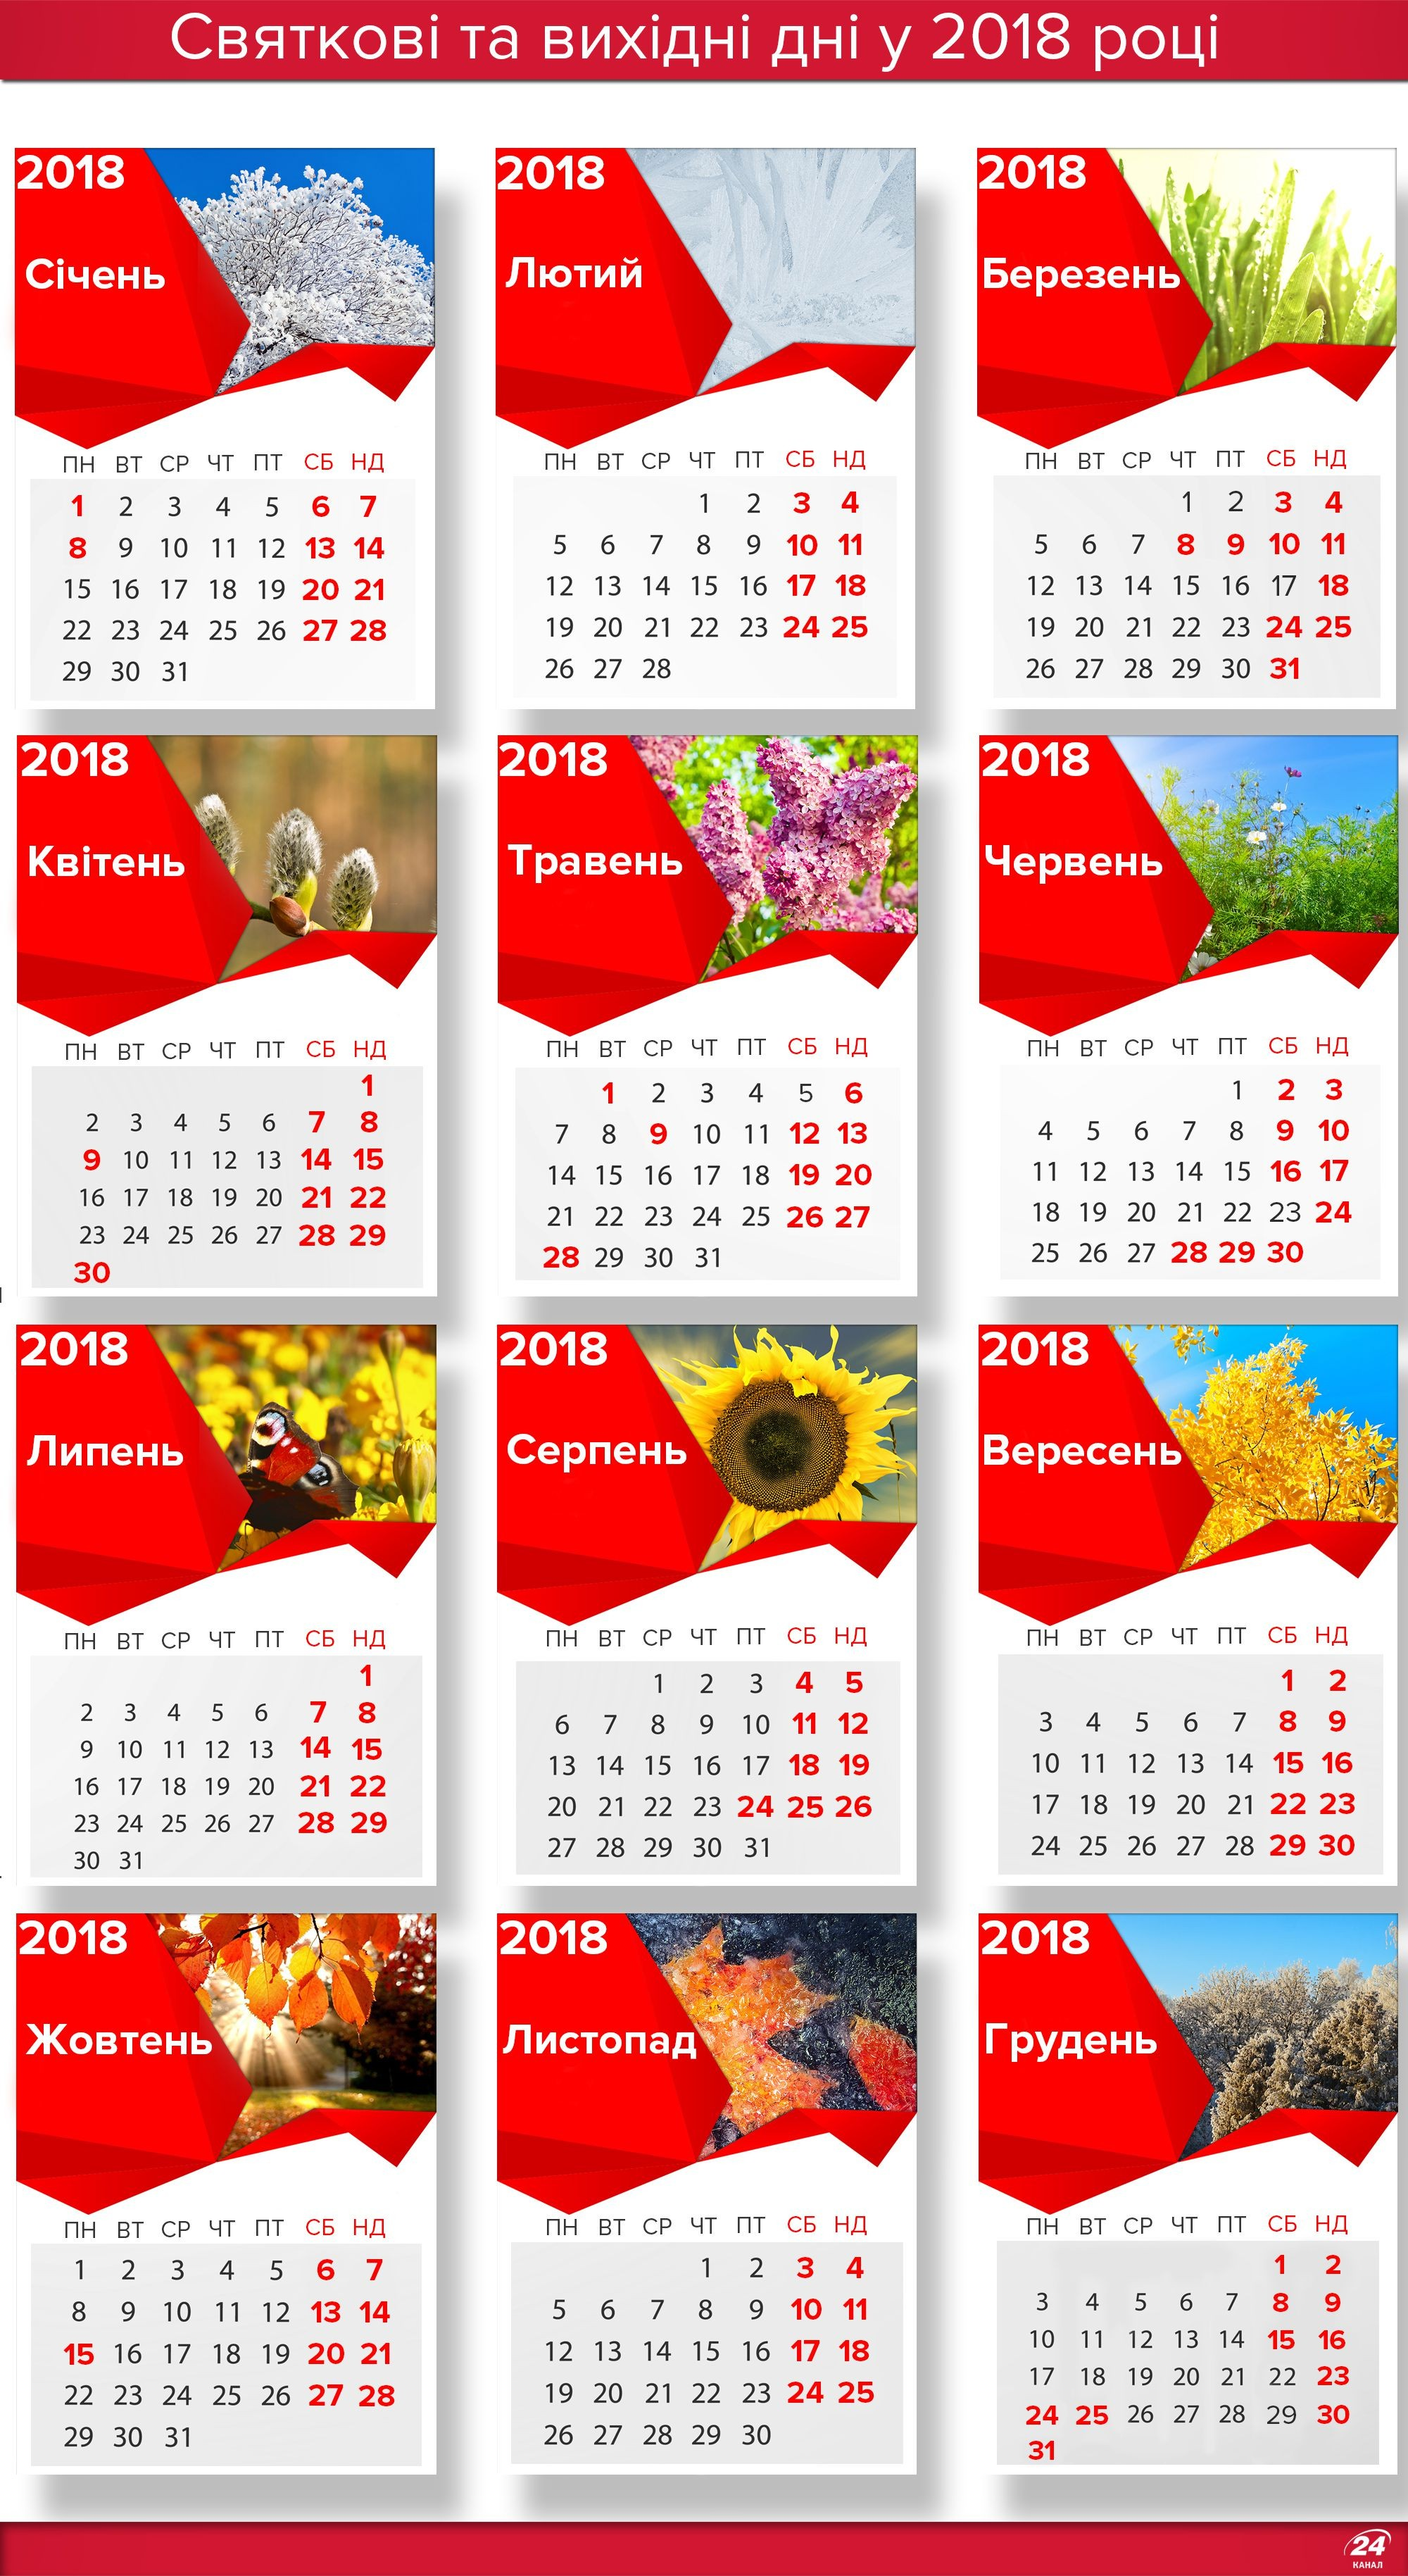 National Day Calendar March Mejores Y Más Novedosos 2018 Holidays In Ukraine Of National Day Calendar March Más Populares asian Festivals Big Holidays and events